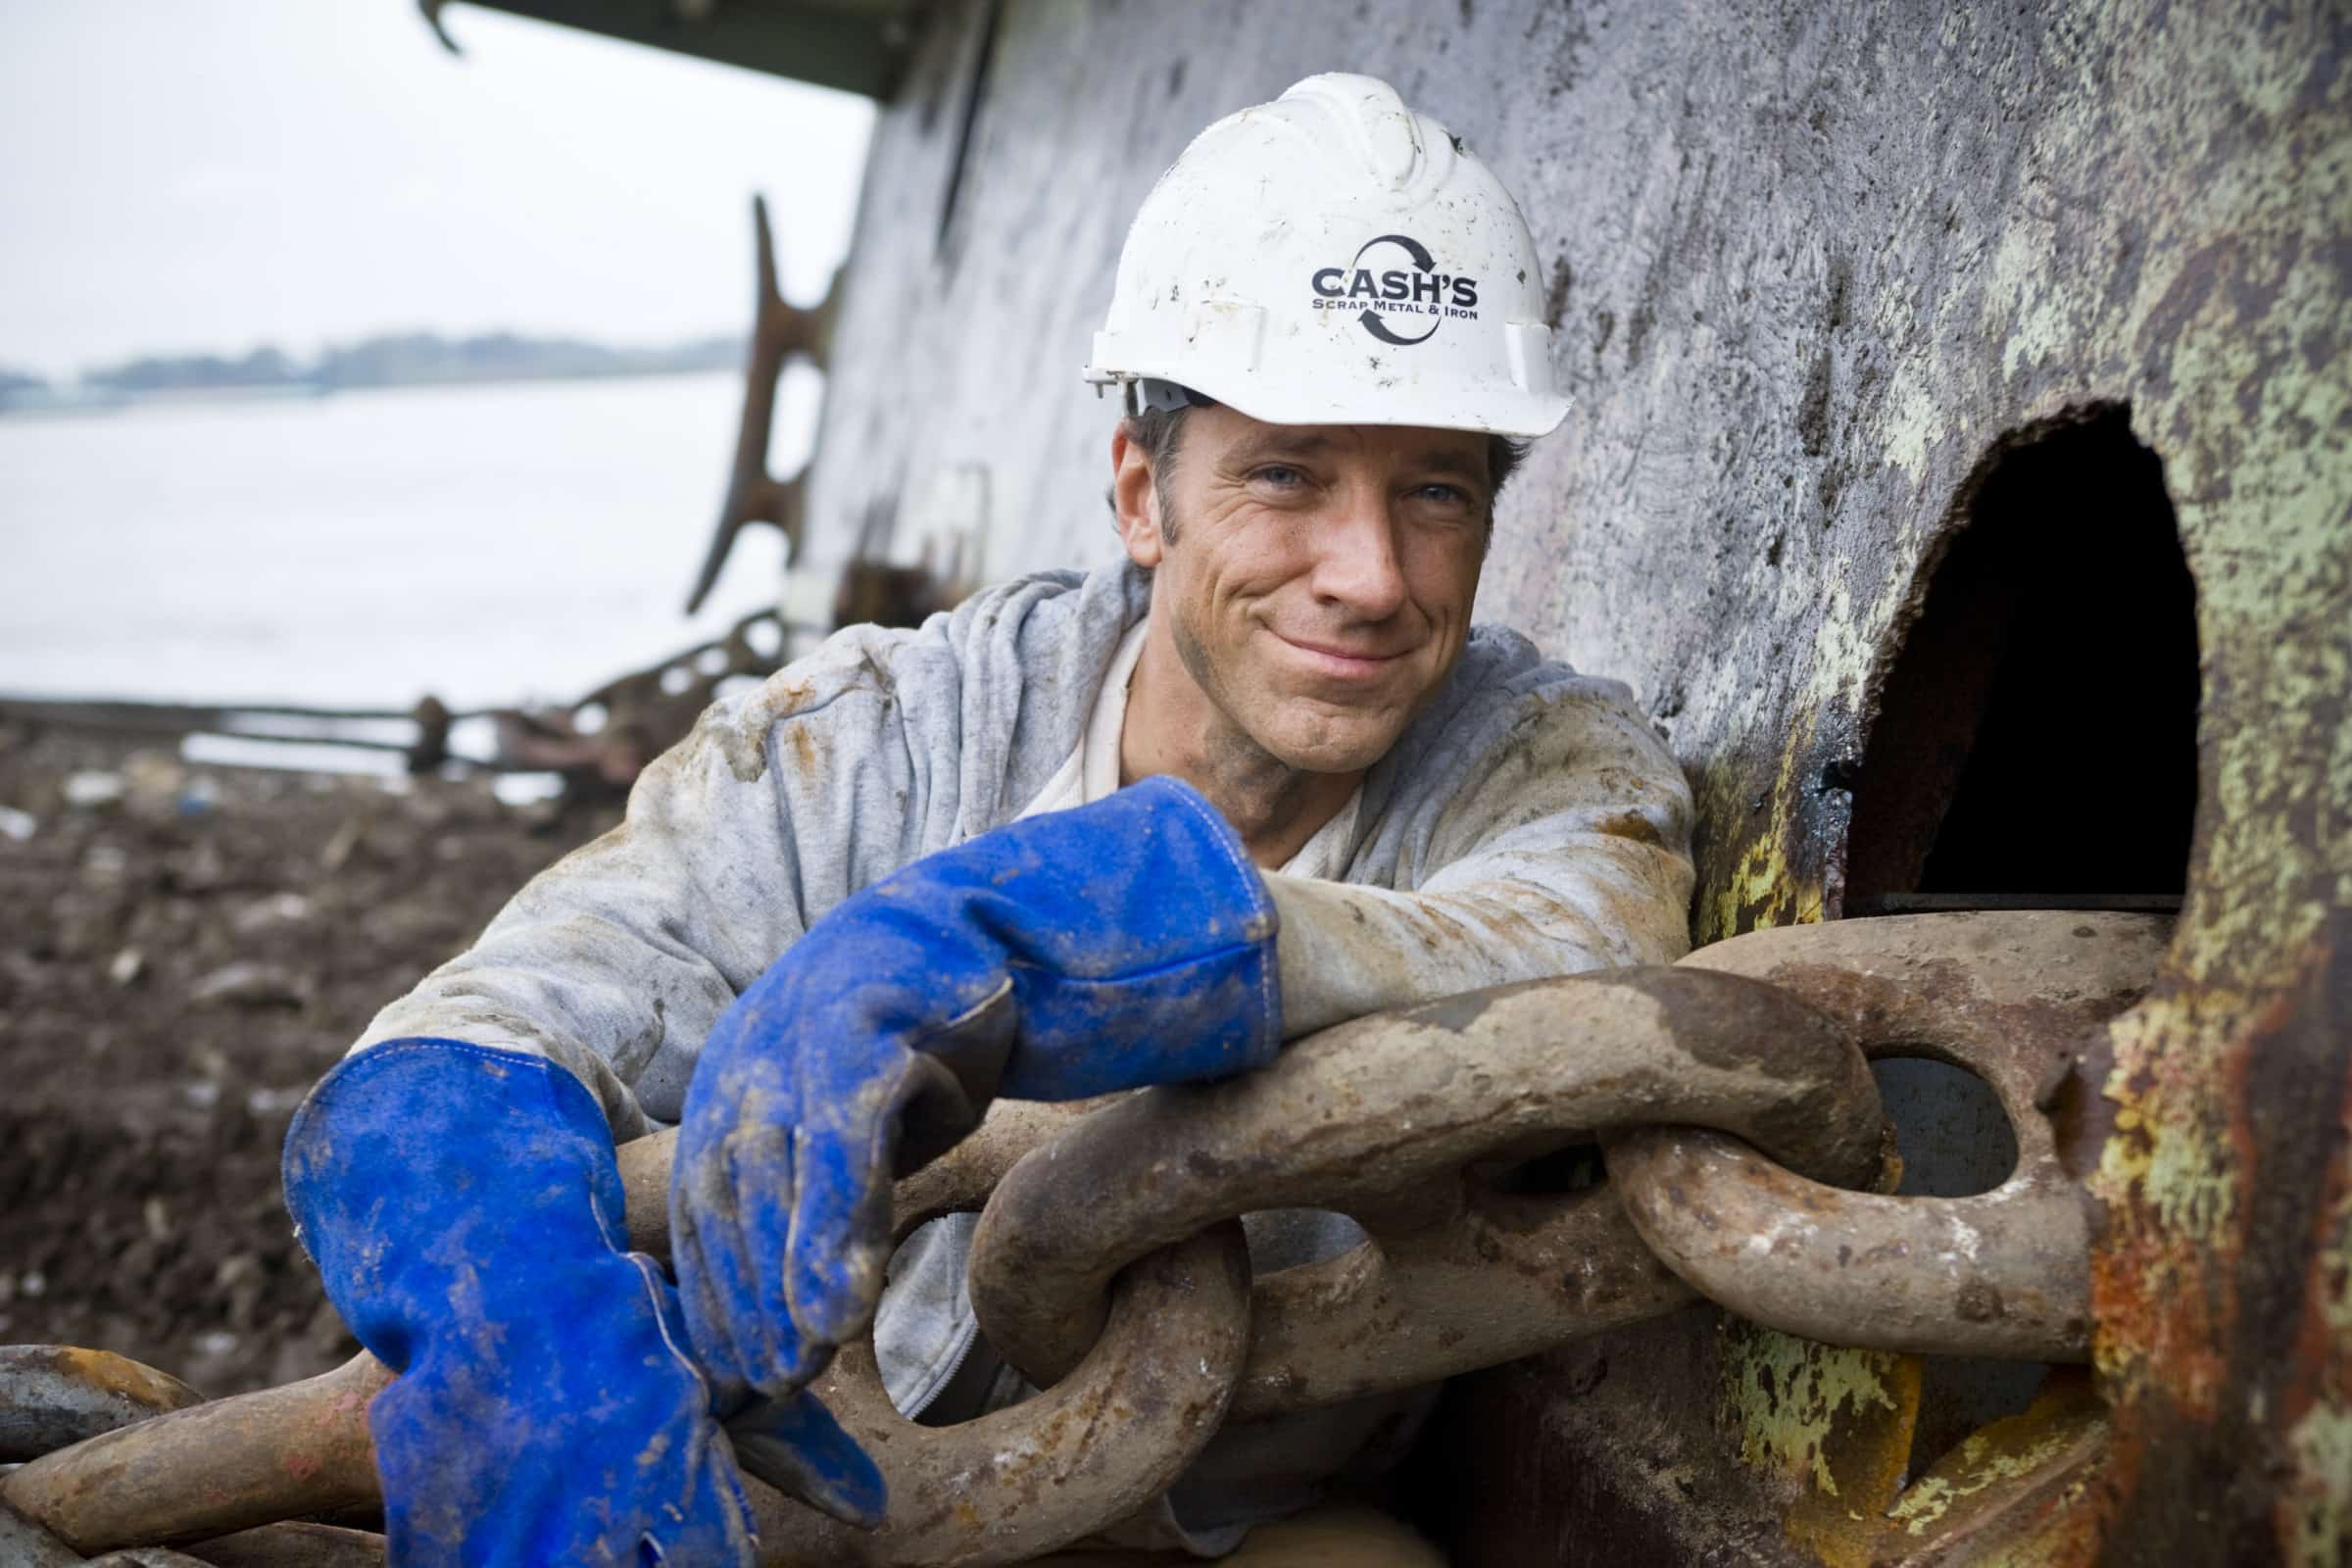 Mike Rowe has a job for you